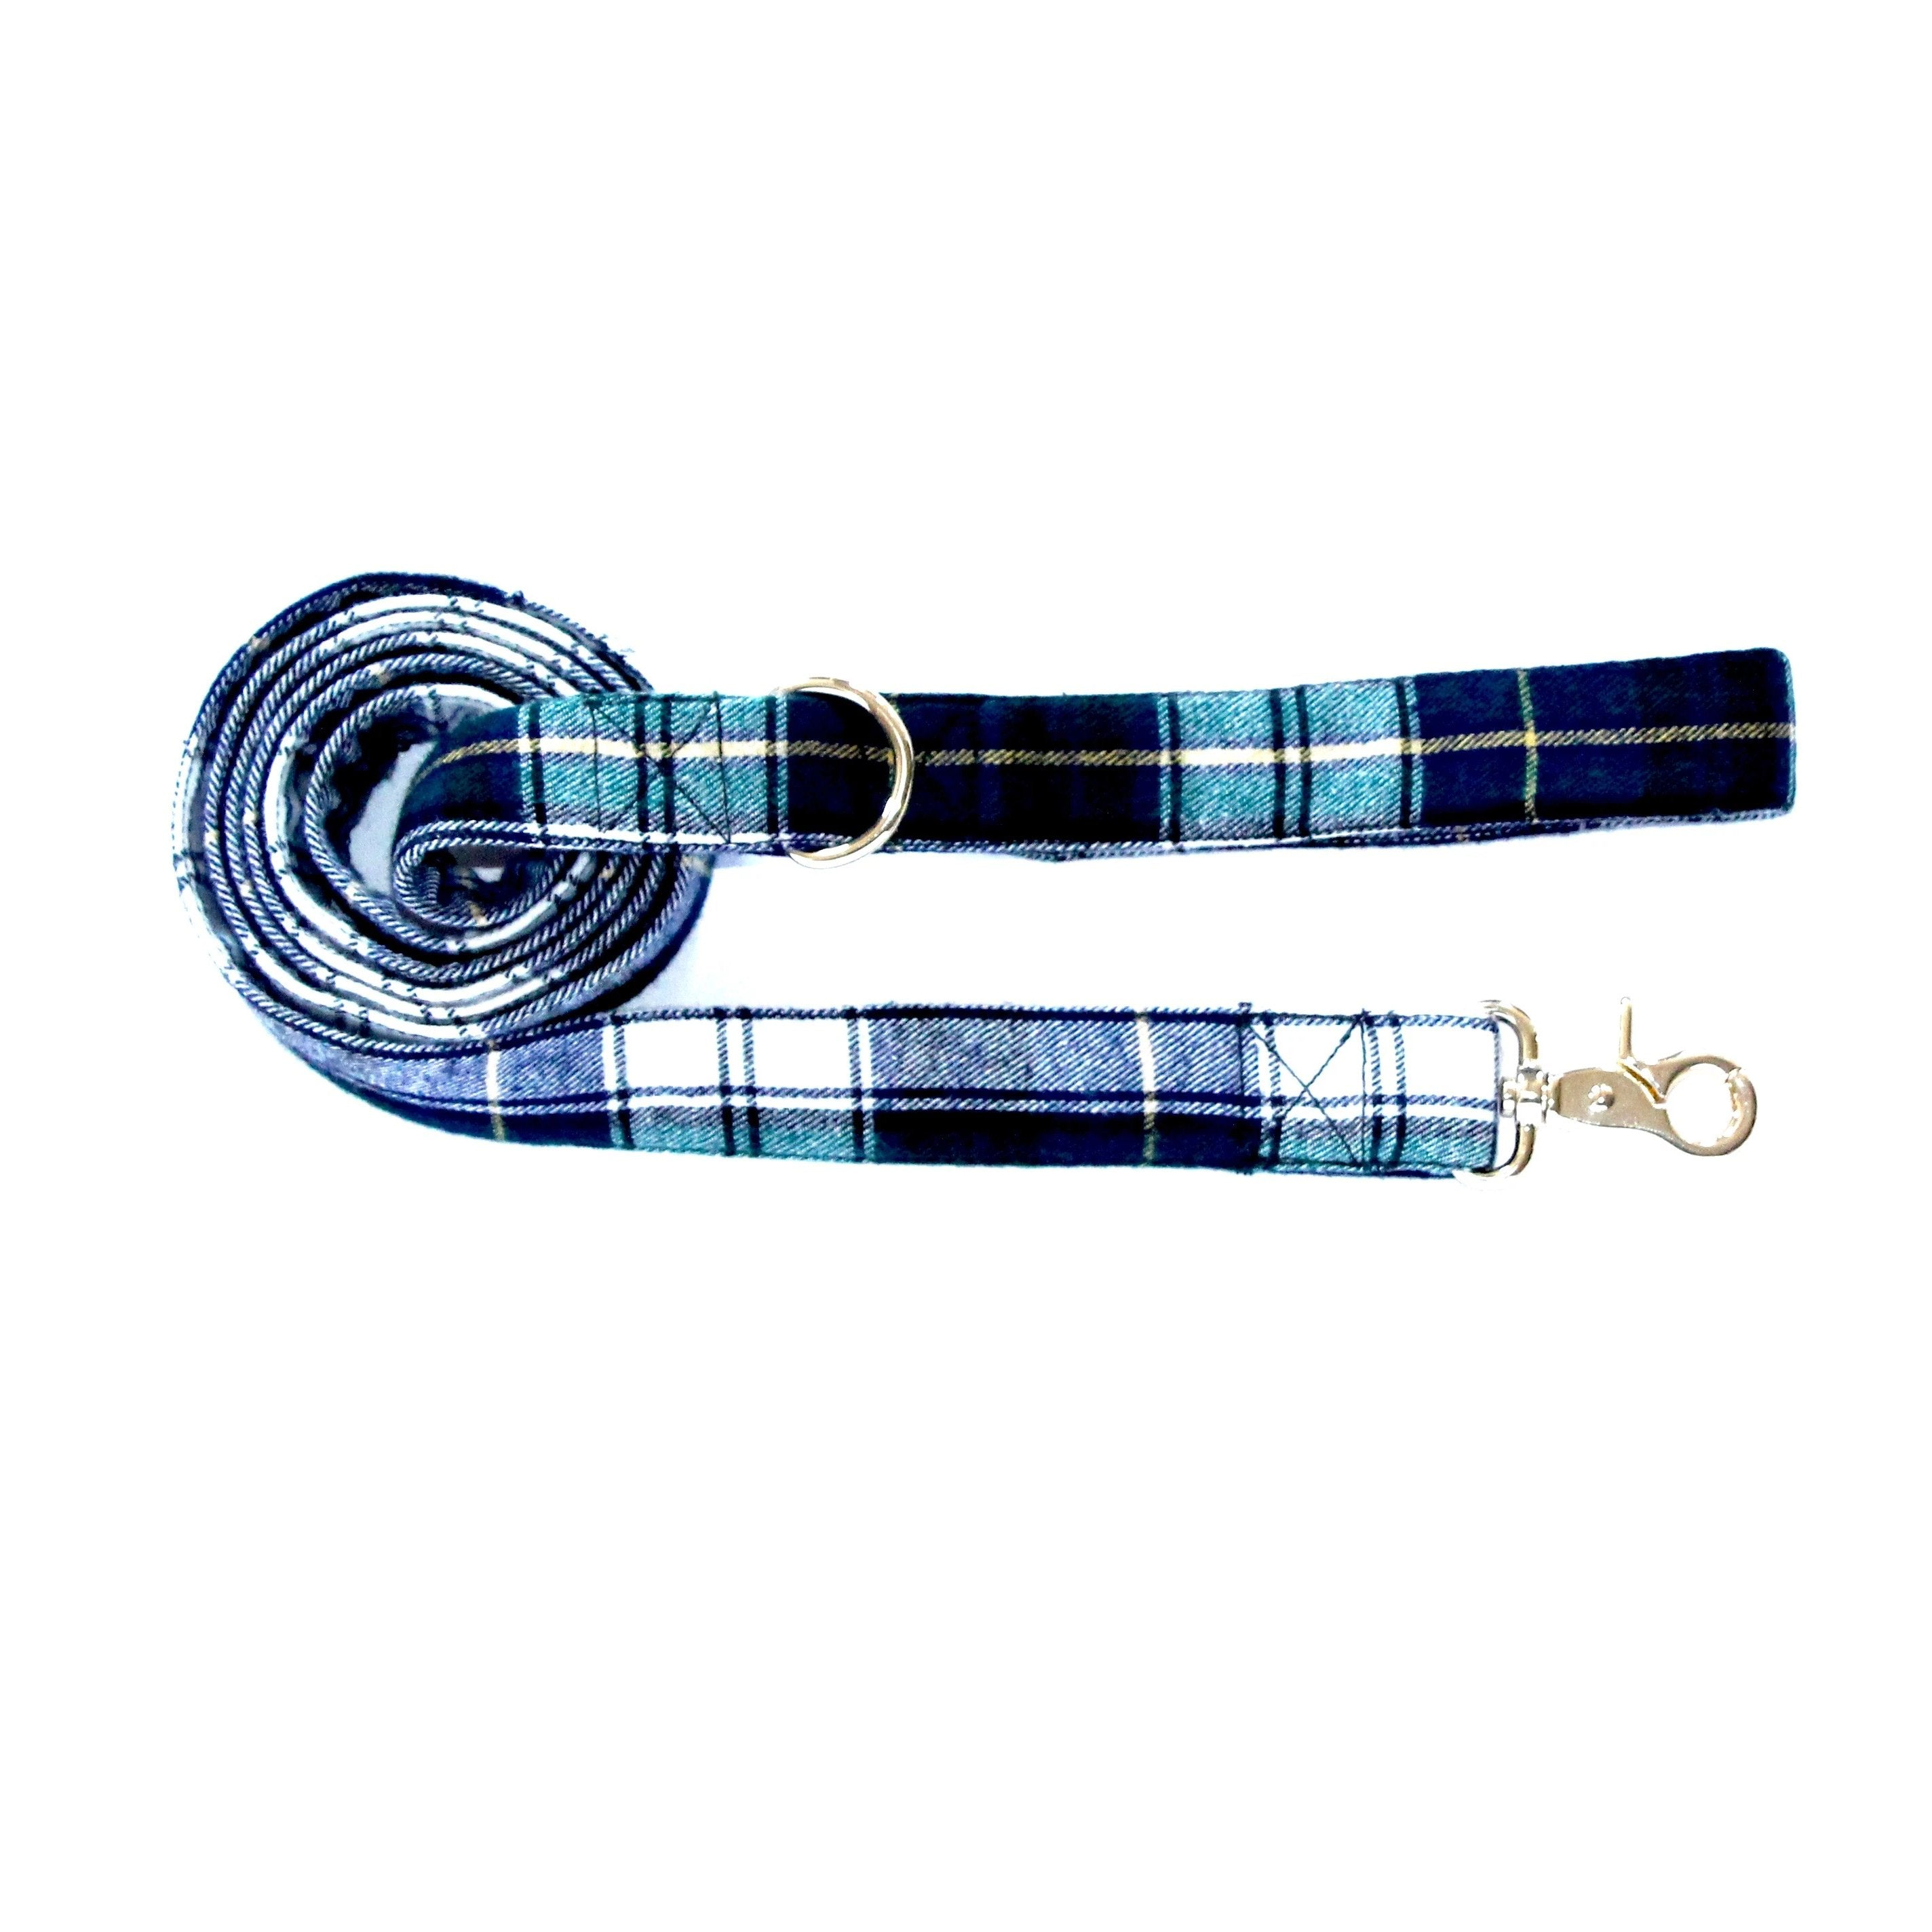 Clothes Companion The Chase Dog Leash